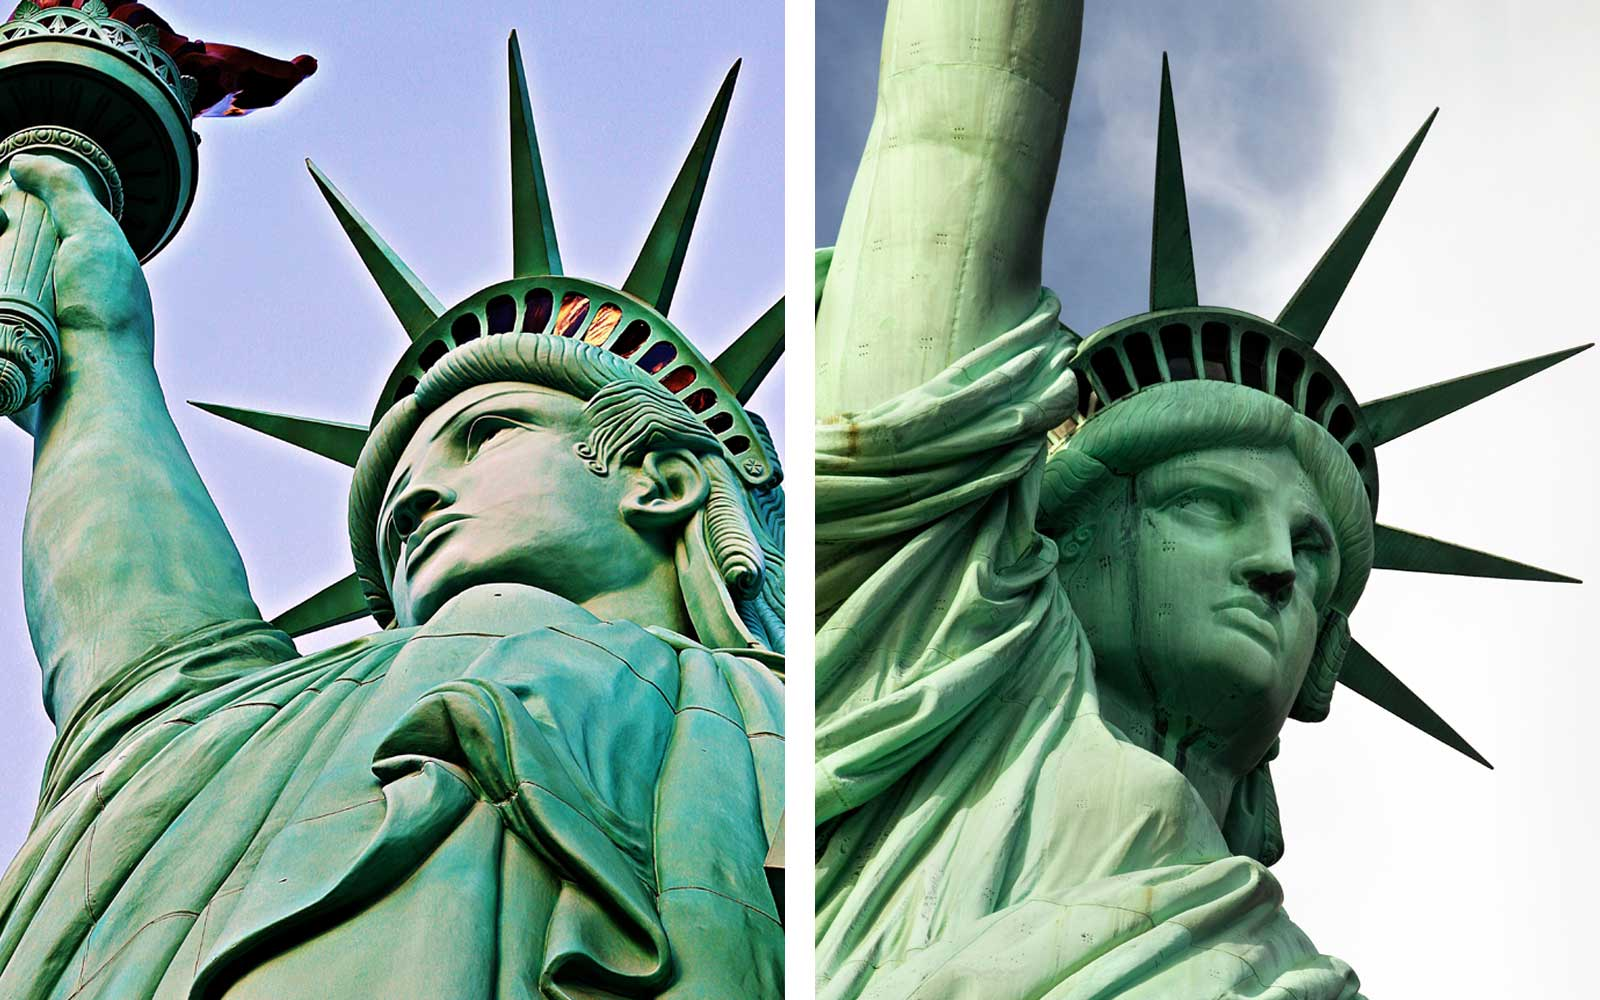 Statue of Liberty Replica in Las Vegas and Statue of Liberty in New York